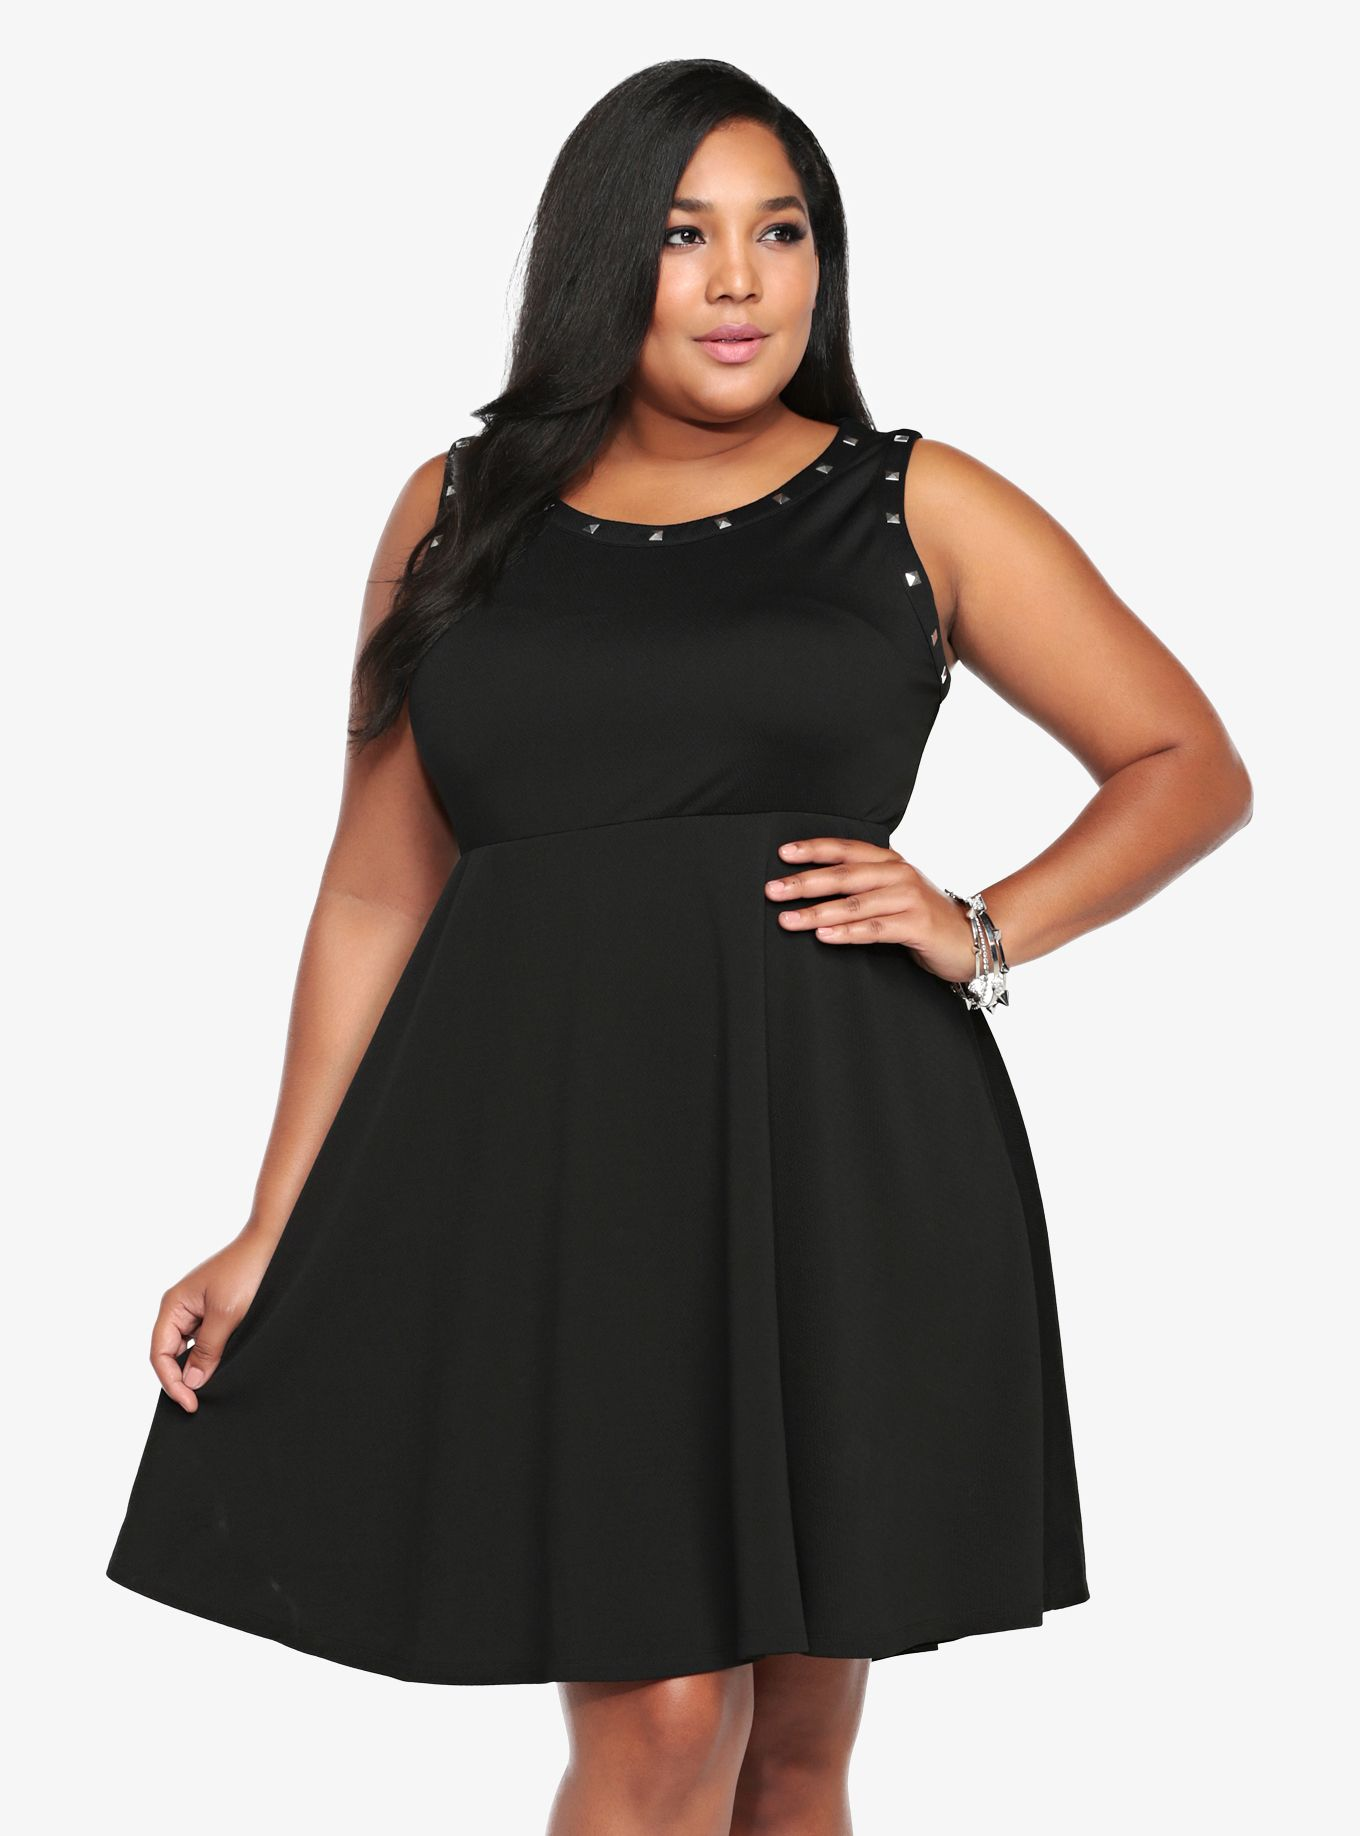 Lace dress torrid  Turn heads with our Studded Skater Dress  Thick Chick Clothing